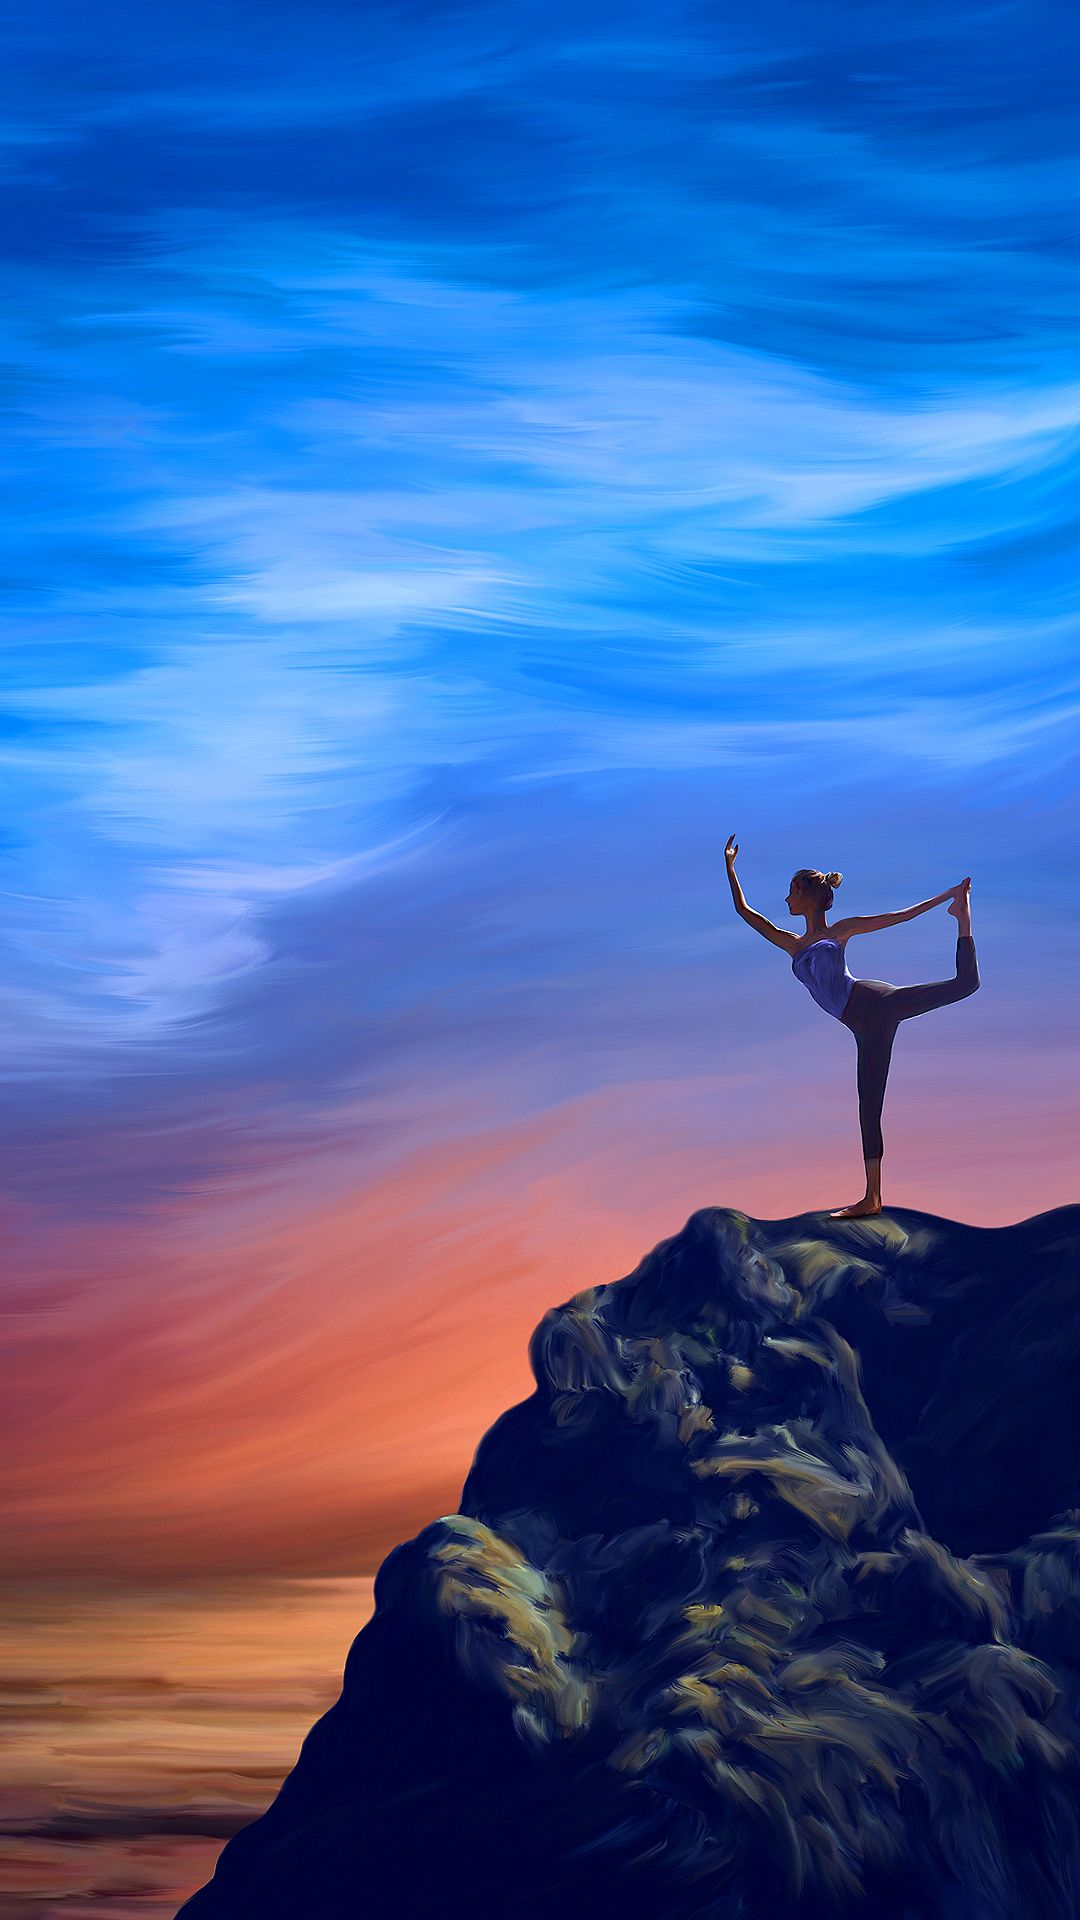 Yoga Wallpaper for Mobile Devices – Artwork by GoodVibesGallery.com  Mobile Wallpaper Art